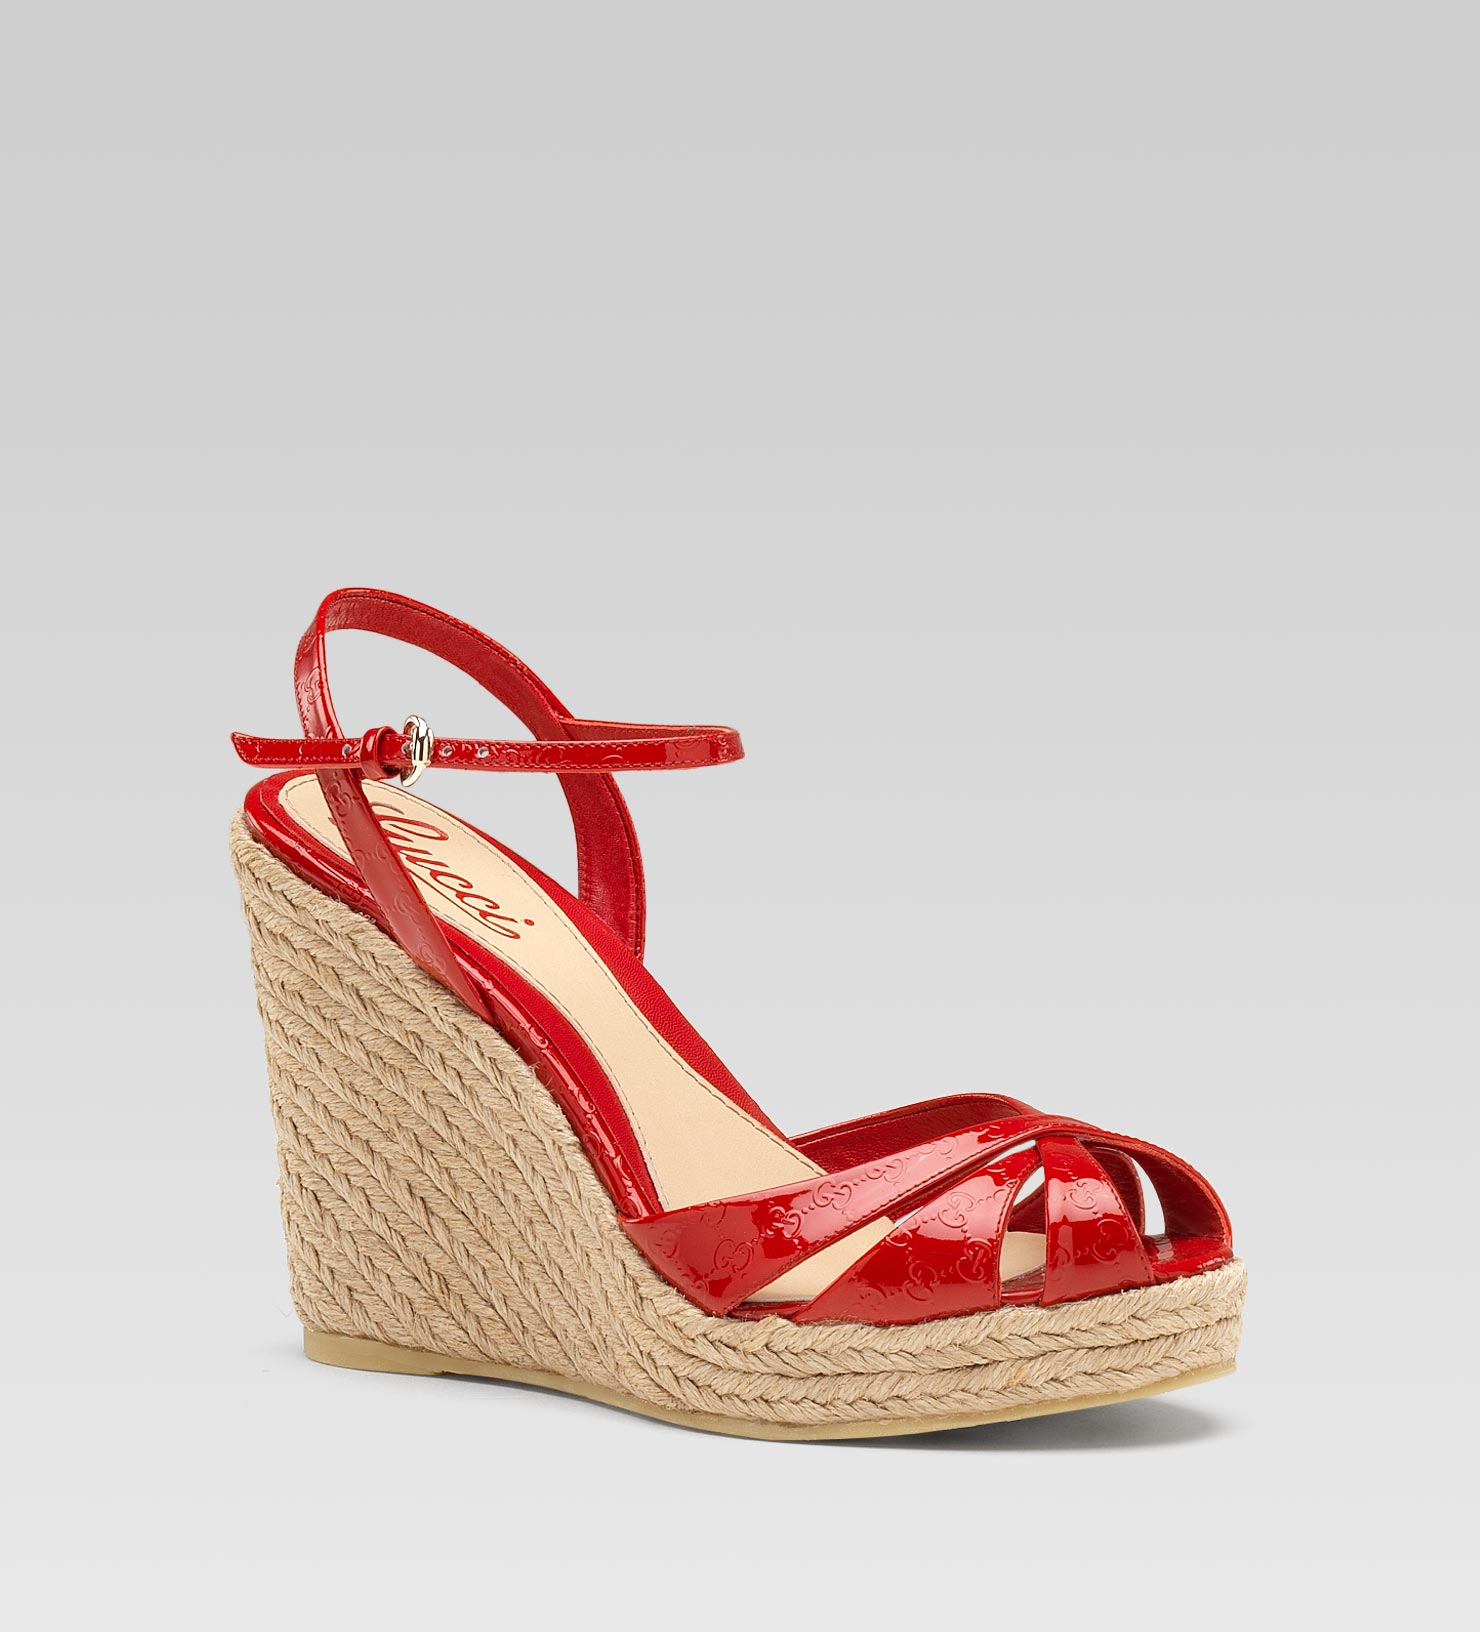 a03a4a98b6c8 Gucci Penelope Strappy Espadrille Wedge Sandal in Red - Lyst